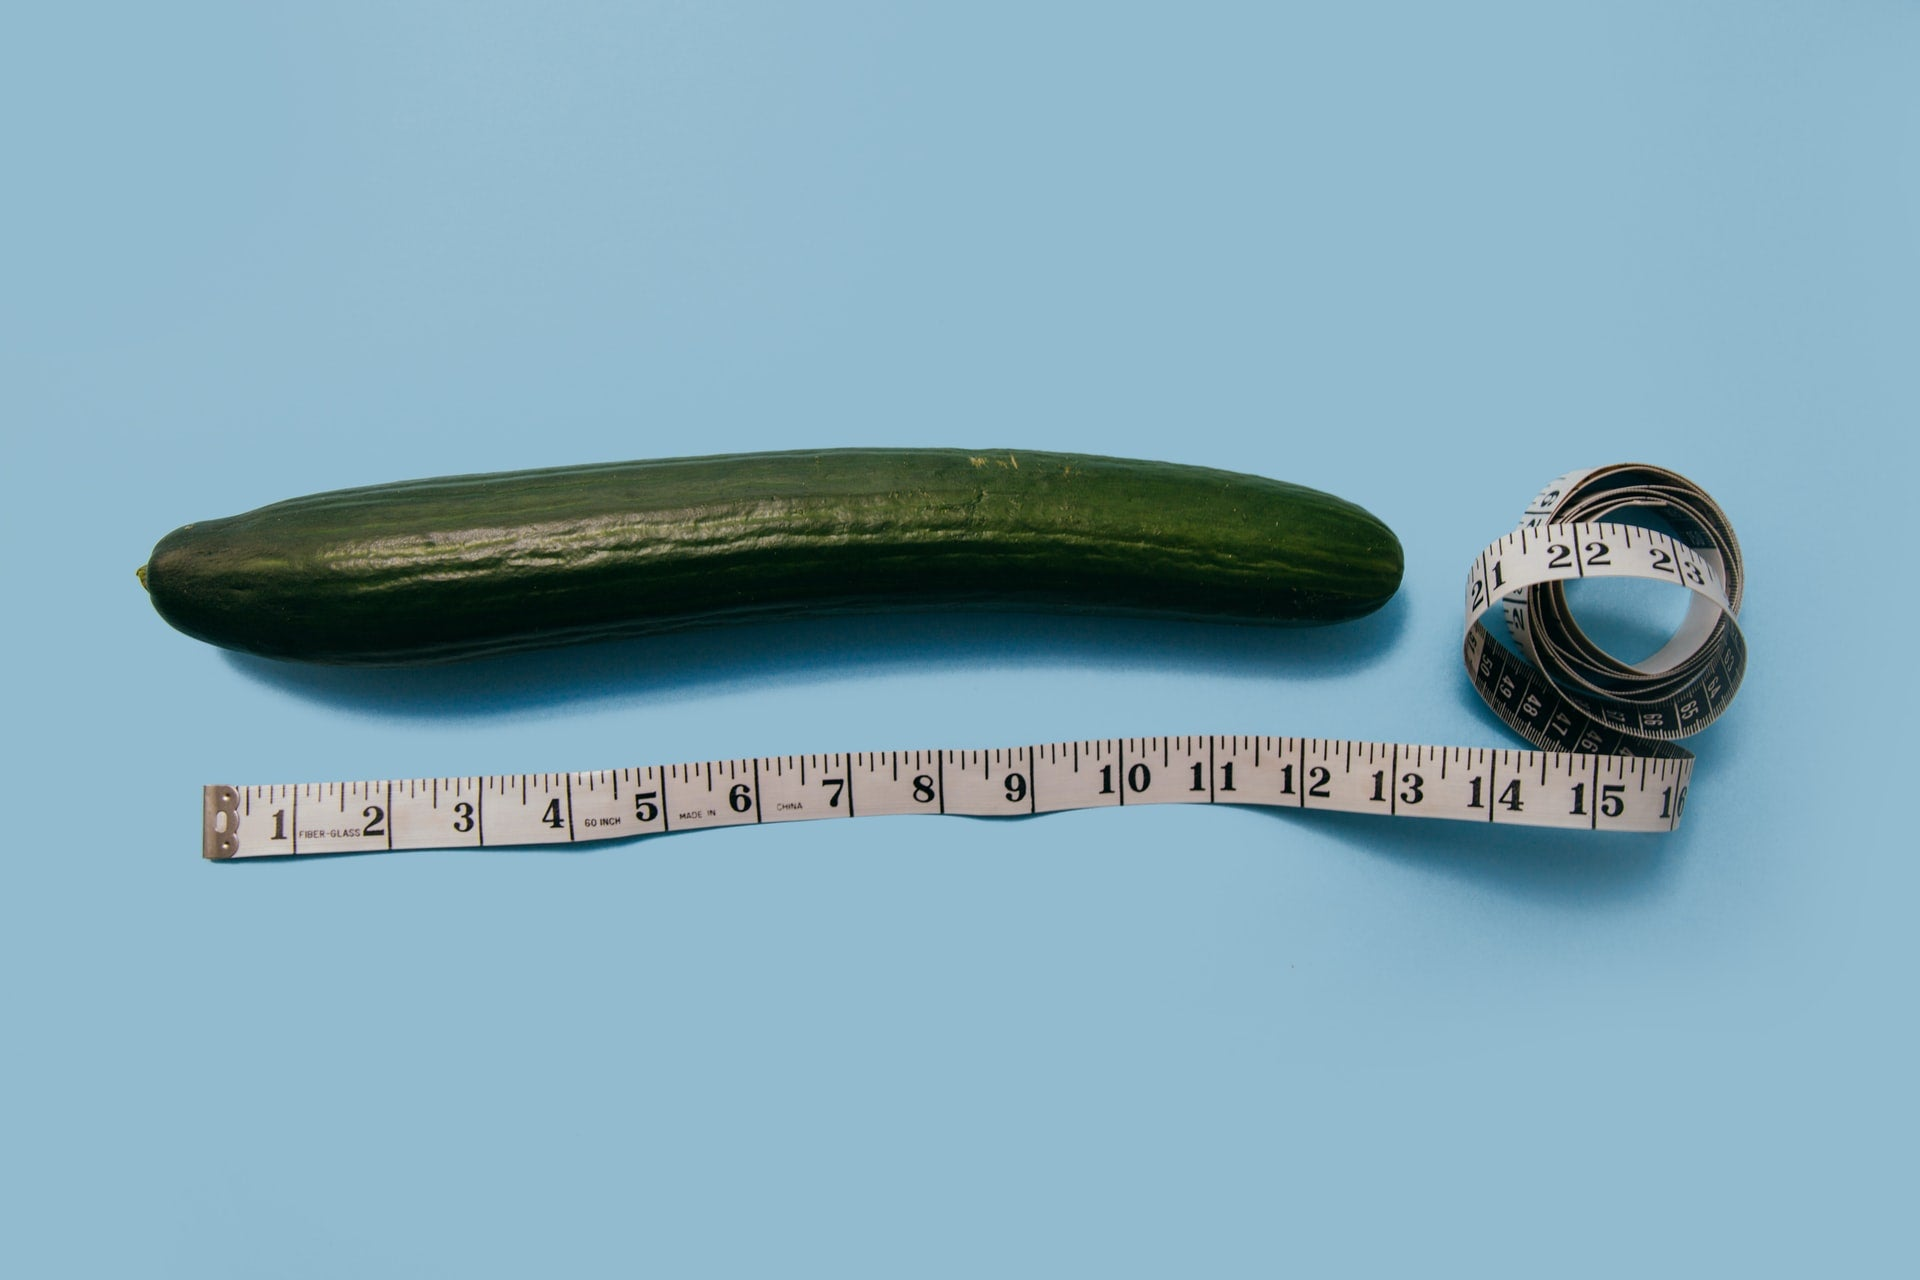 a vegetable and a tape measure